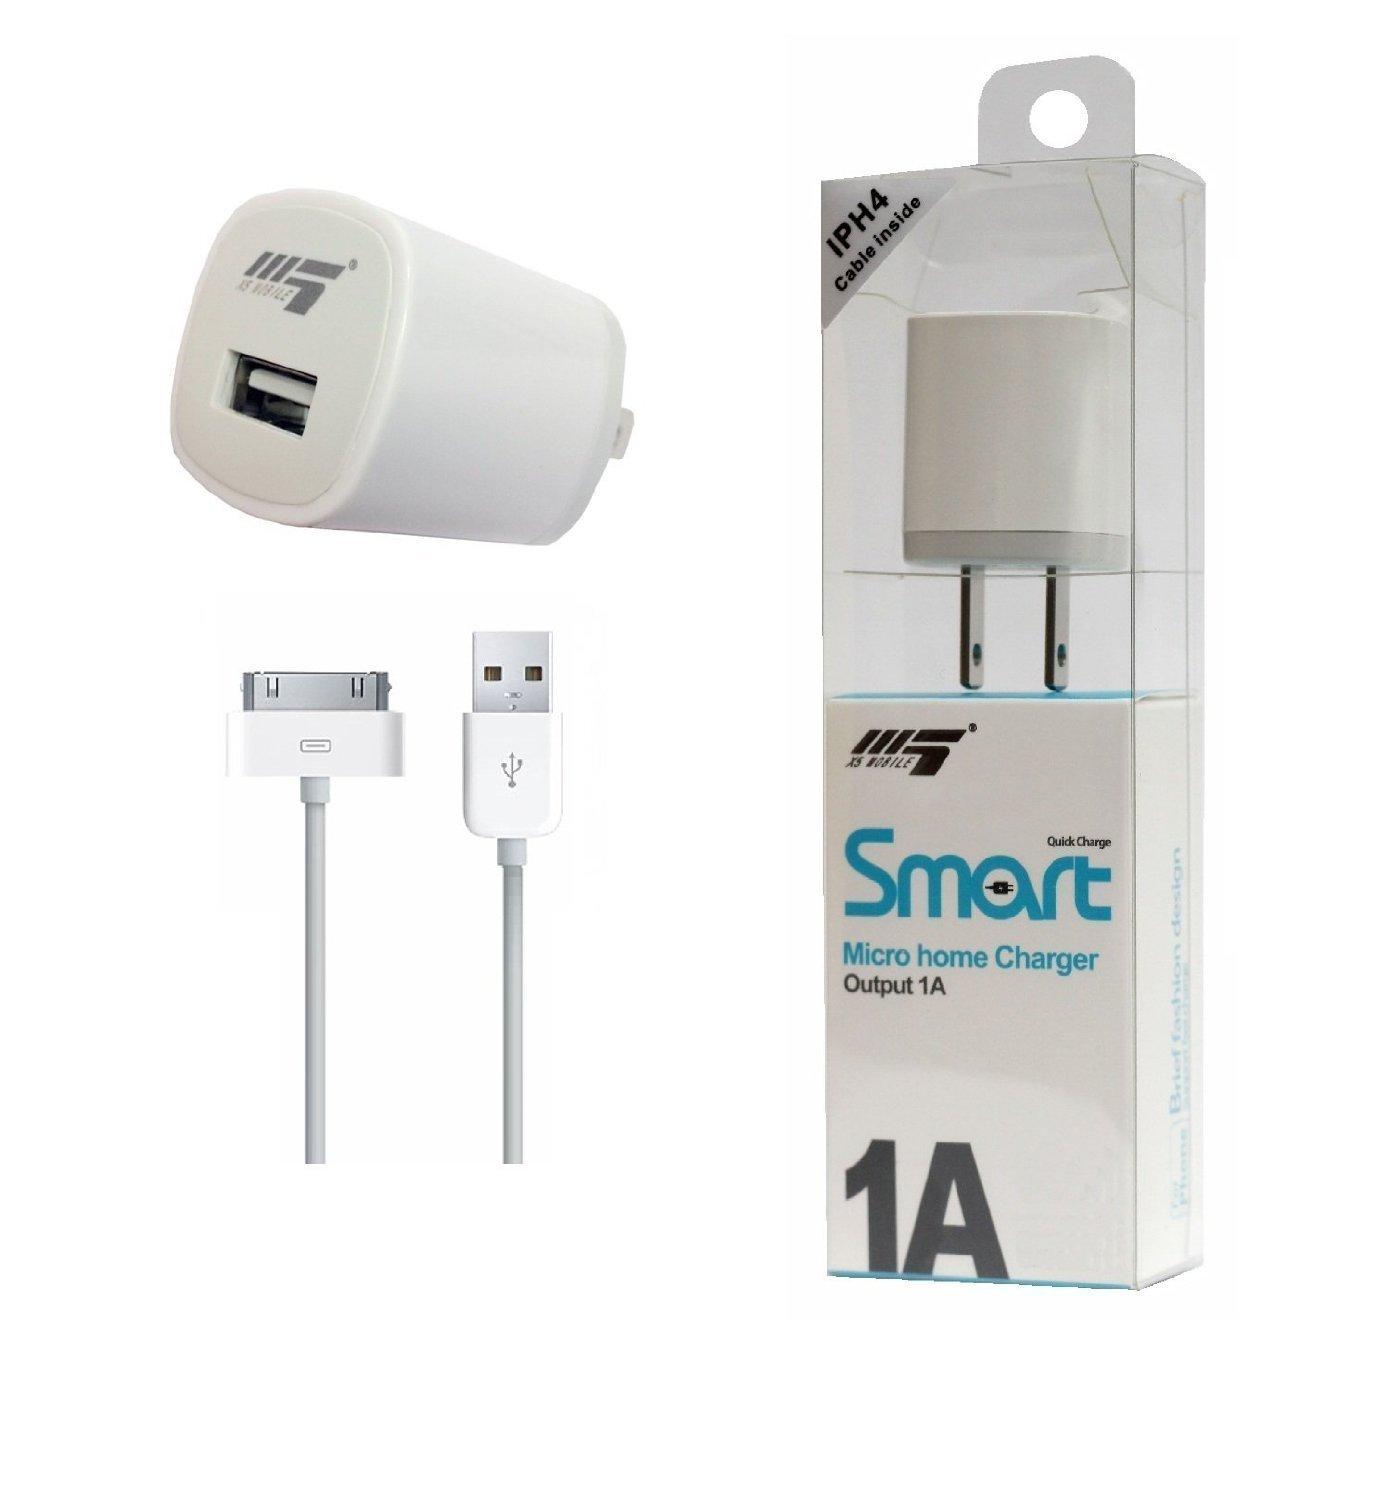 X5 Mobile Fast USB Home And Travel Wall Charger for Apple iPad 2, New iPad 3, iPhone 4s 4 3 3Gs + 1 iPhone 30pin cable (iphone 4s 4 3 3gs and ipad 2 and 3)